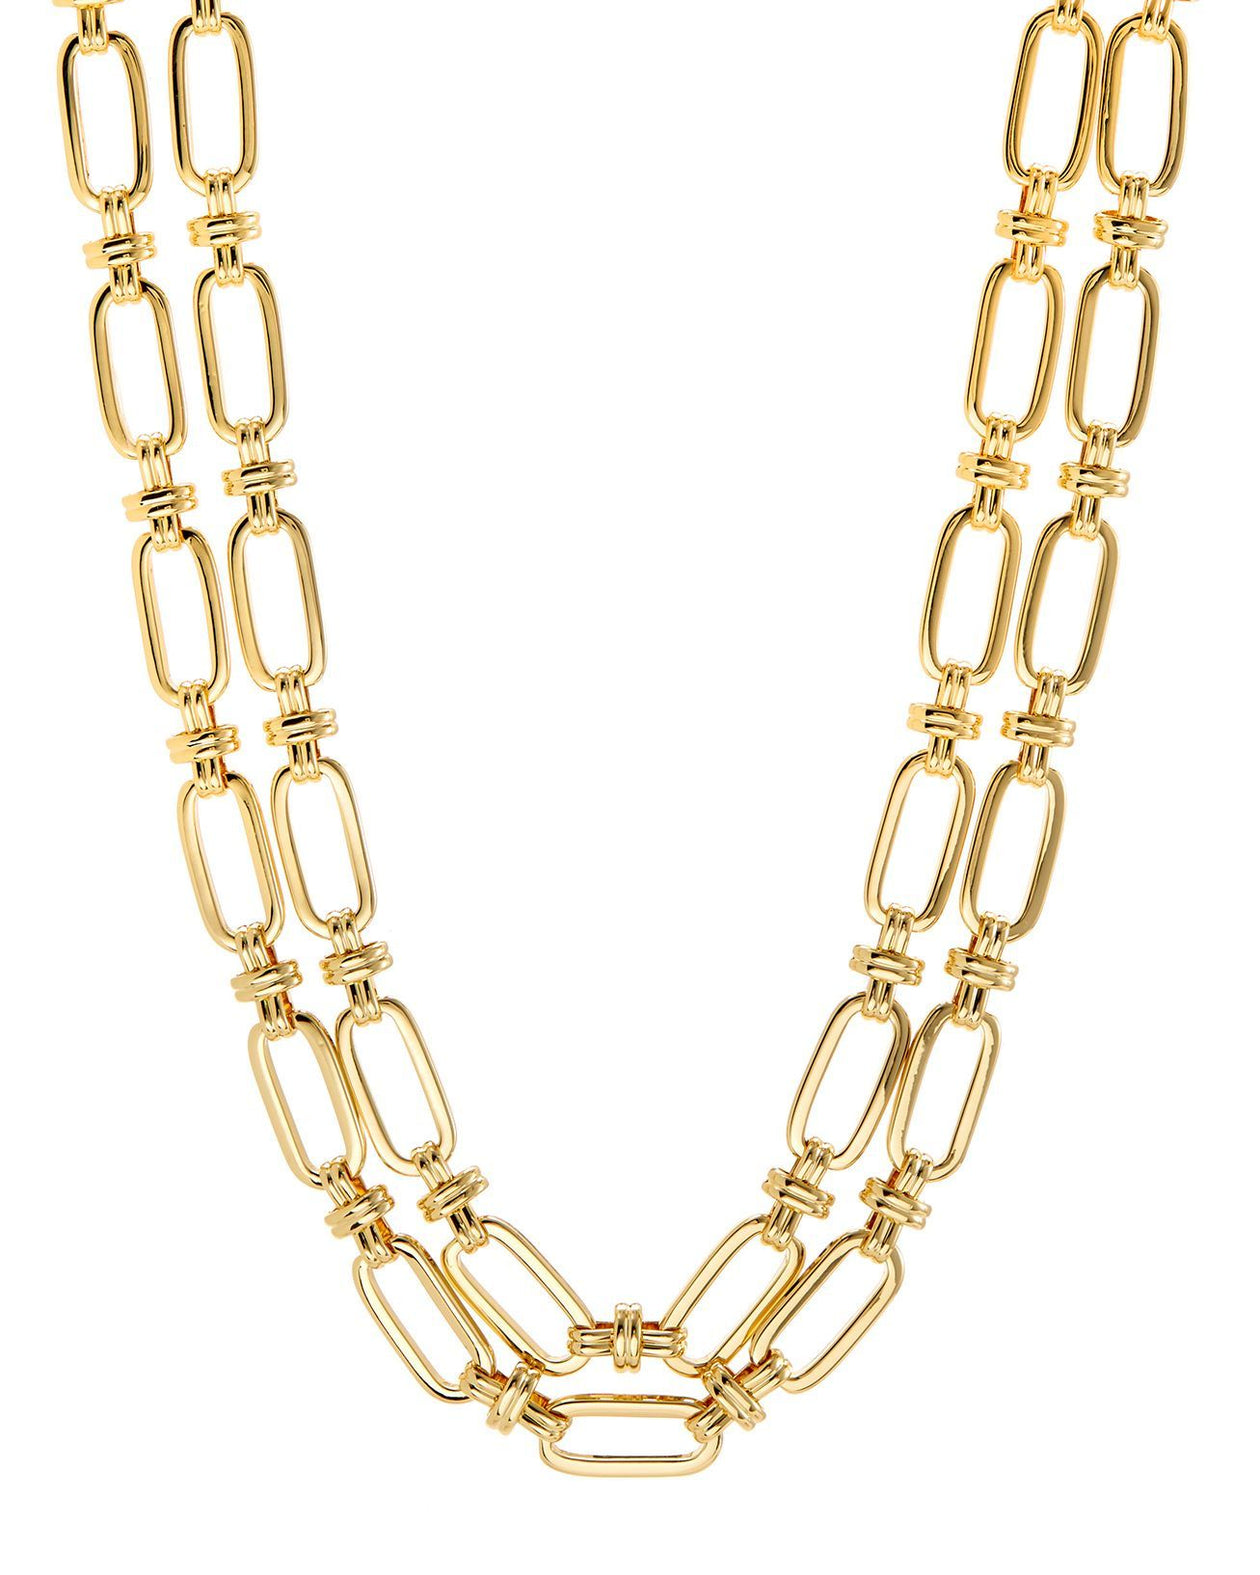 Isabella Statement Necklace - Gold | Luv Aj - Holiday 2020